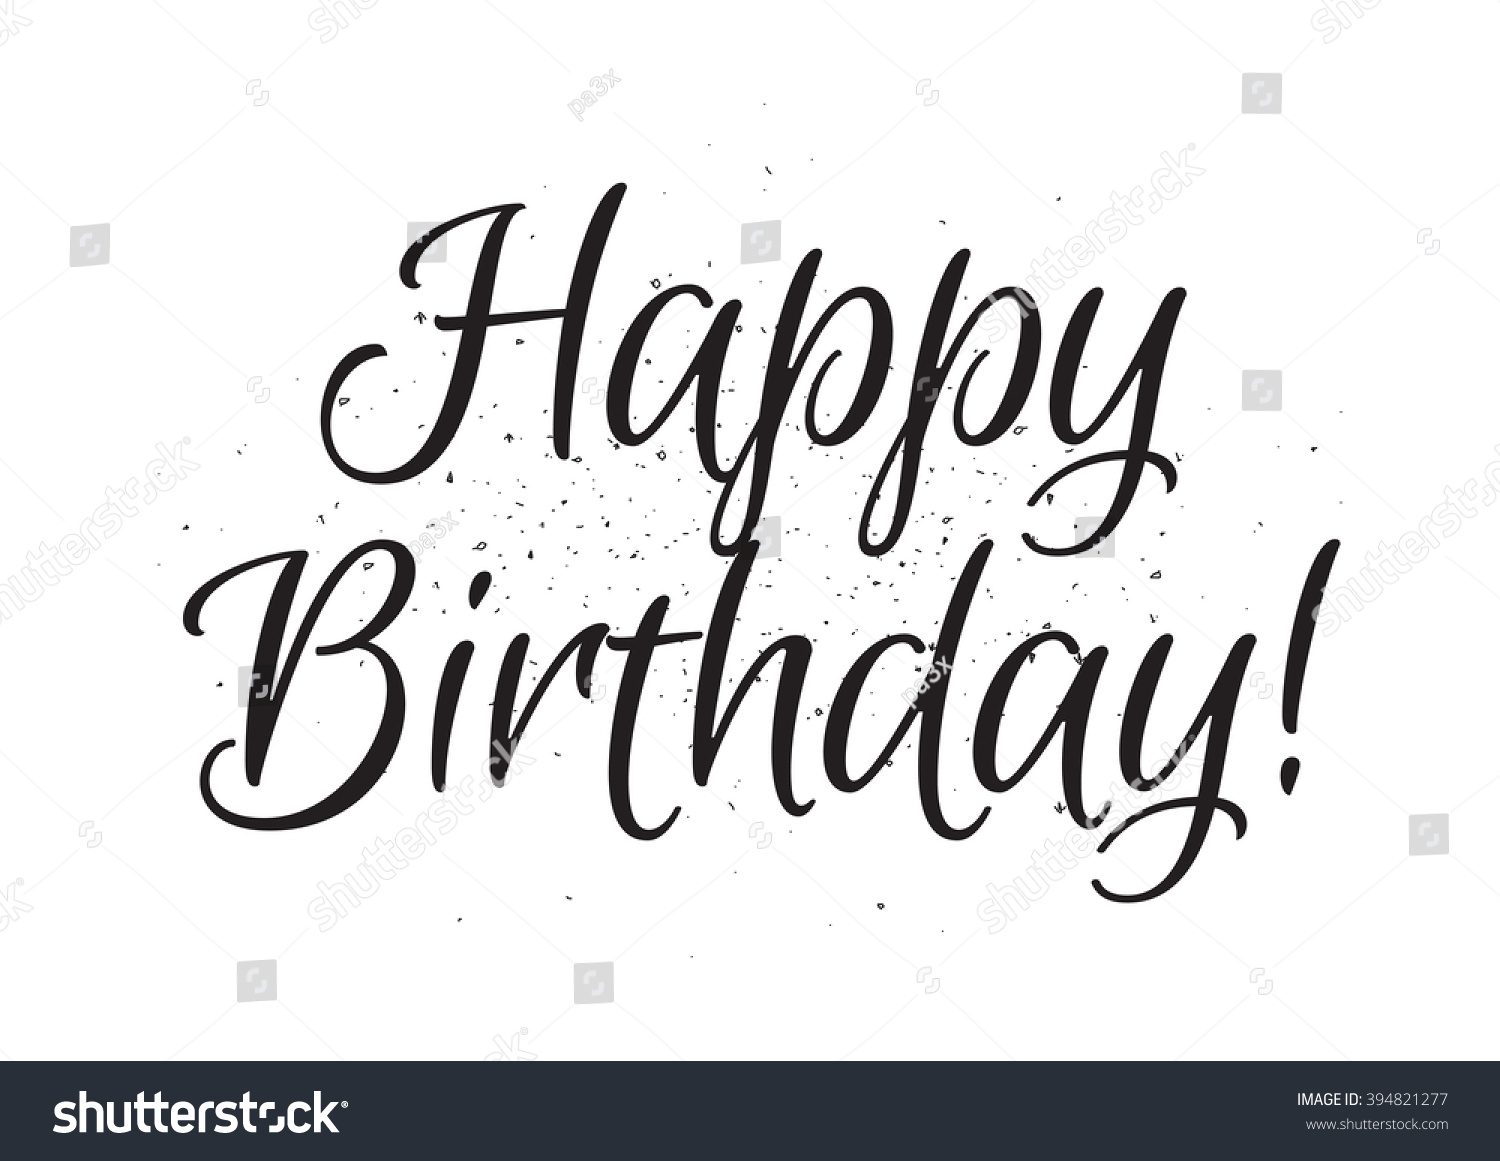 Happy Birthday Inscription Greeting Card With Calligraphy Hand Drawn Lettering Design Photo Overlay Typography For Banner Poster Or Apparel